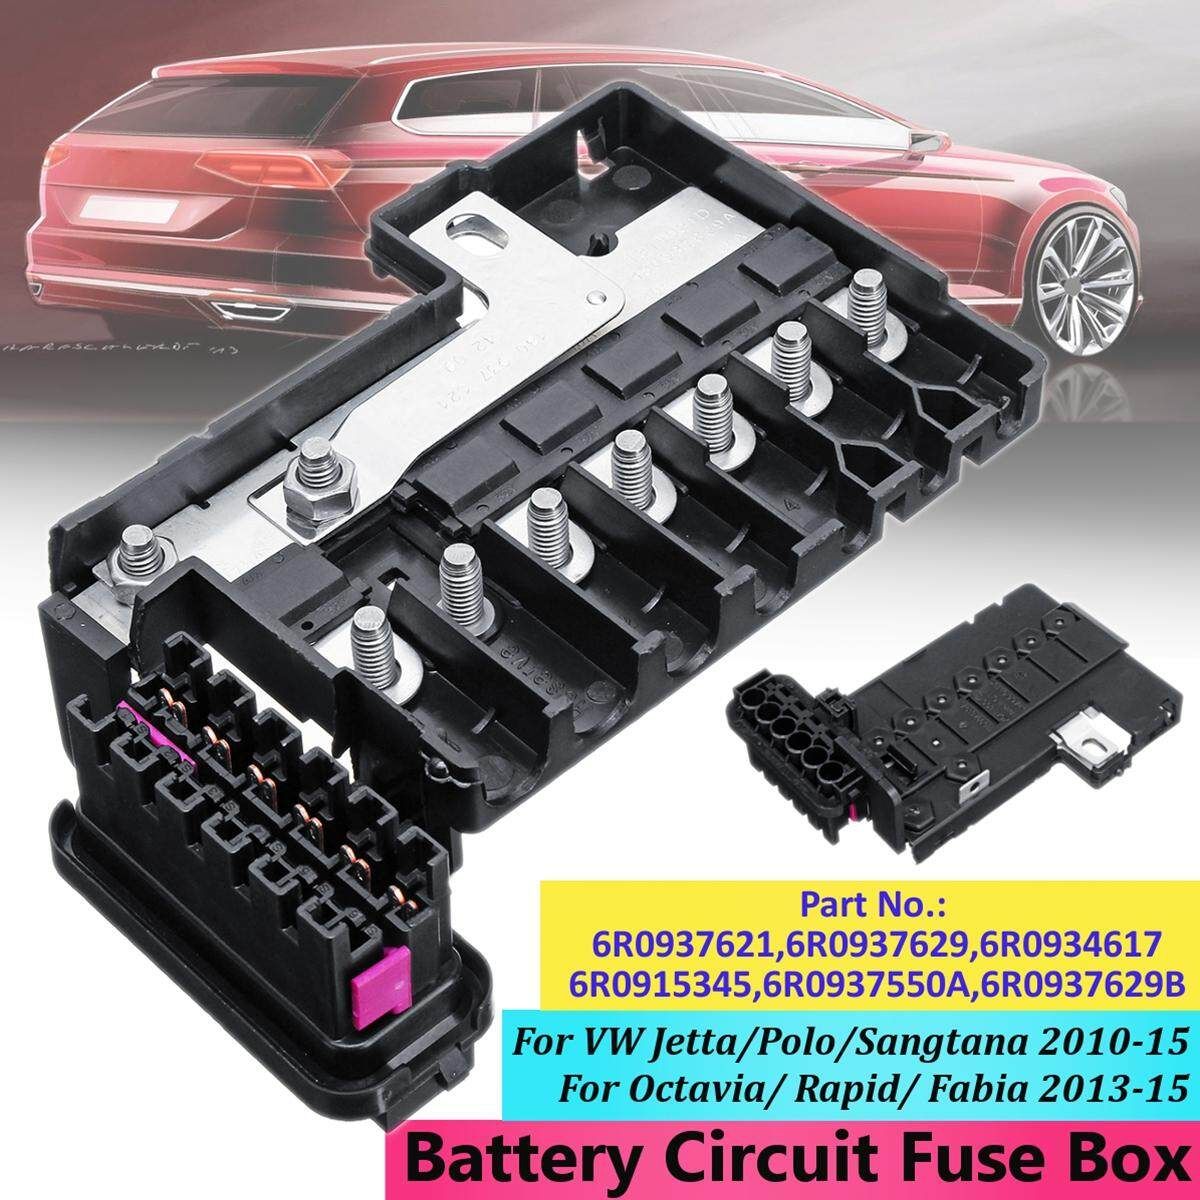 【free Shipping + Flash Deal】bat-Tery Circuit Fuse Box For Vw/ Octavia/ Rapid/ Fabia 6r0937621/6r0934617 By Freebang.